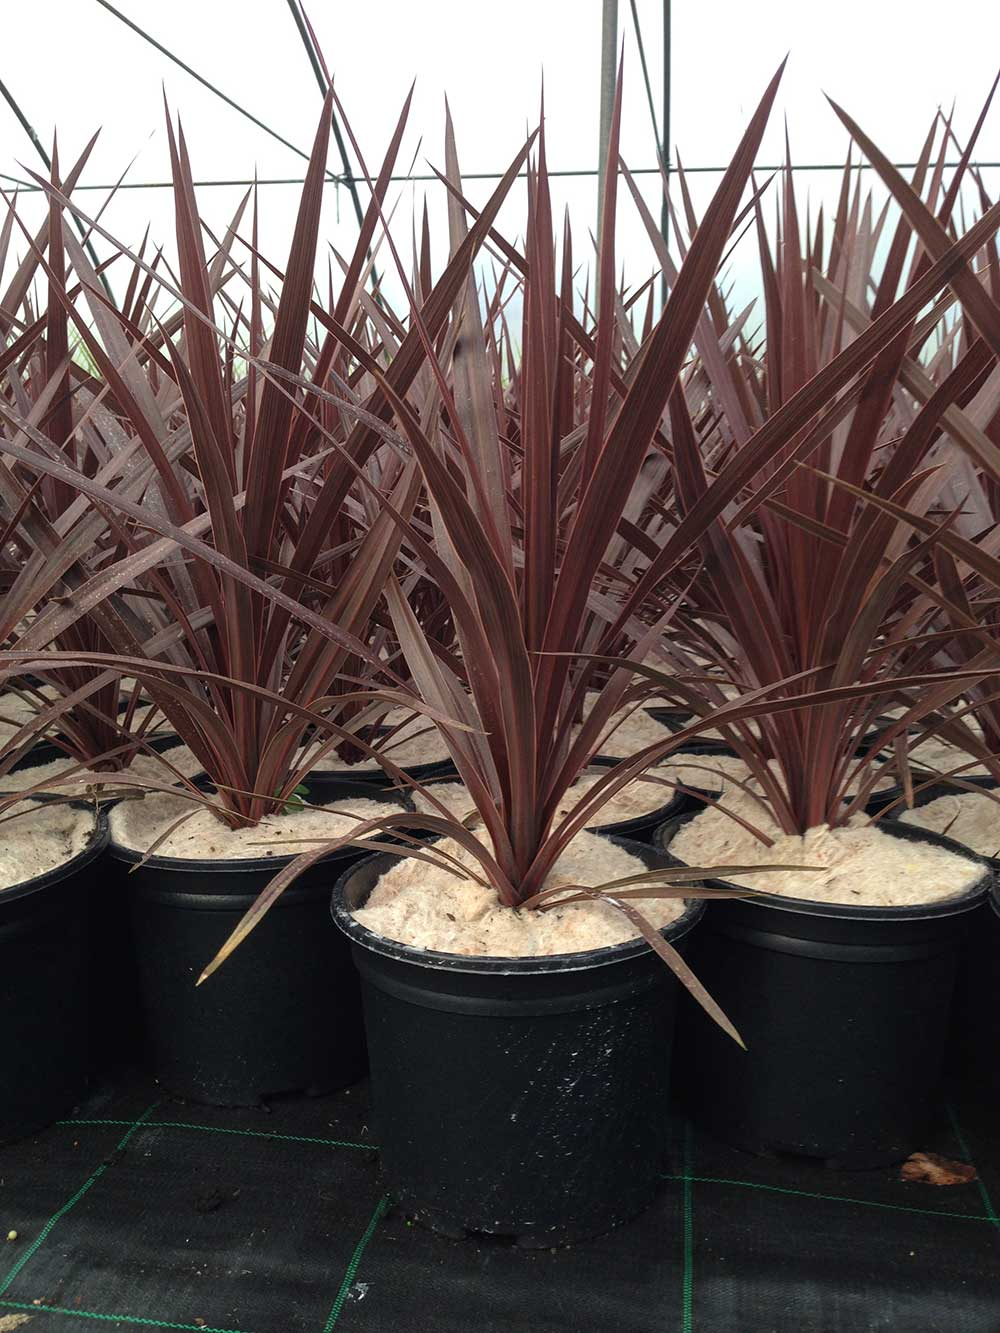 2 Cordyline australis 'Red Star' approx 30cm tall well estalished in 3L Pot